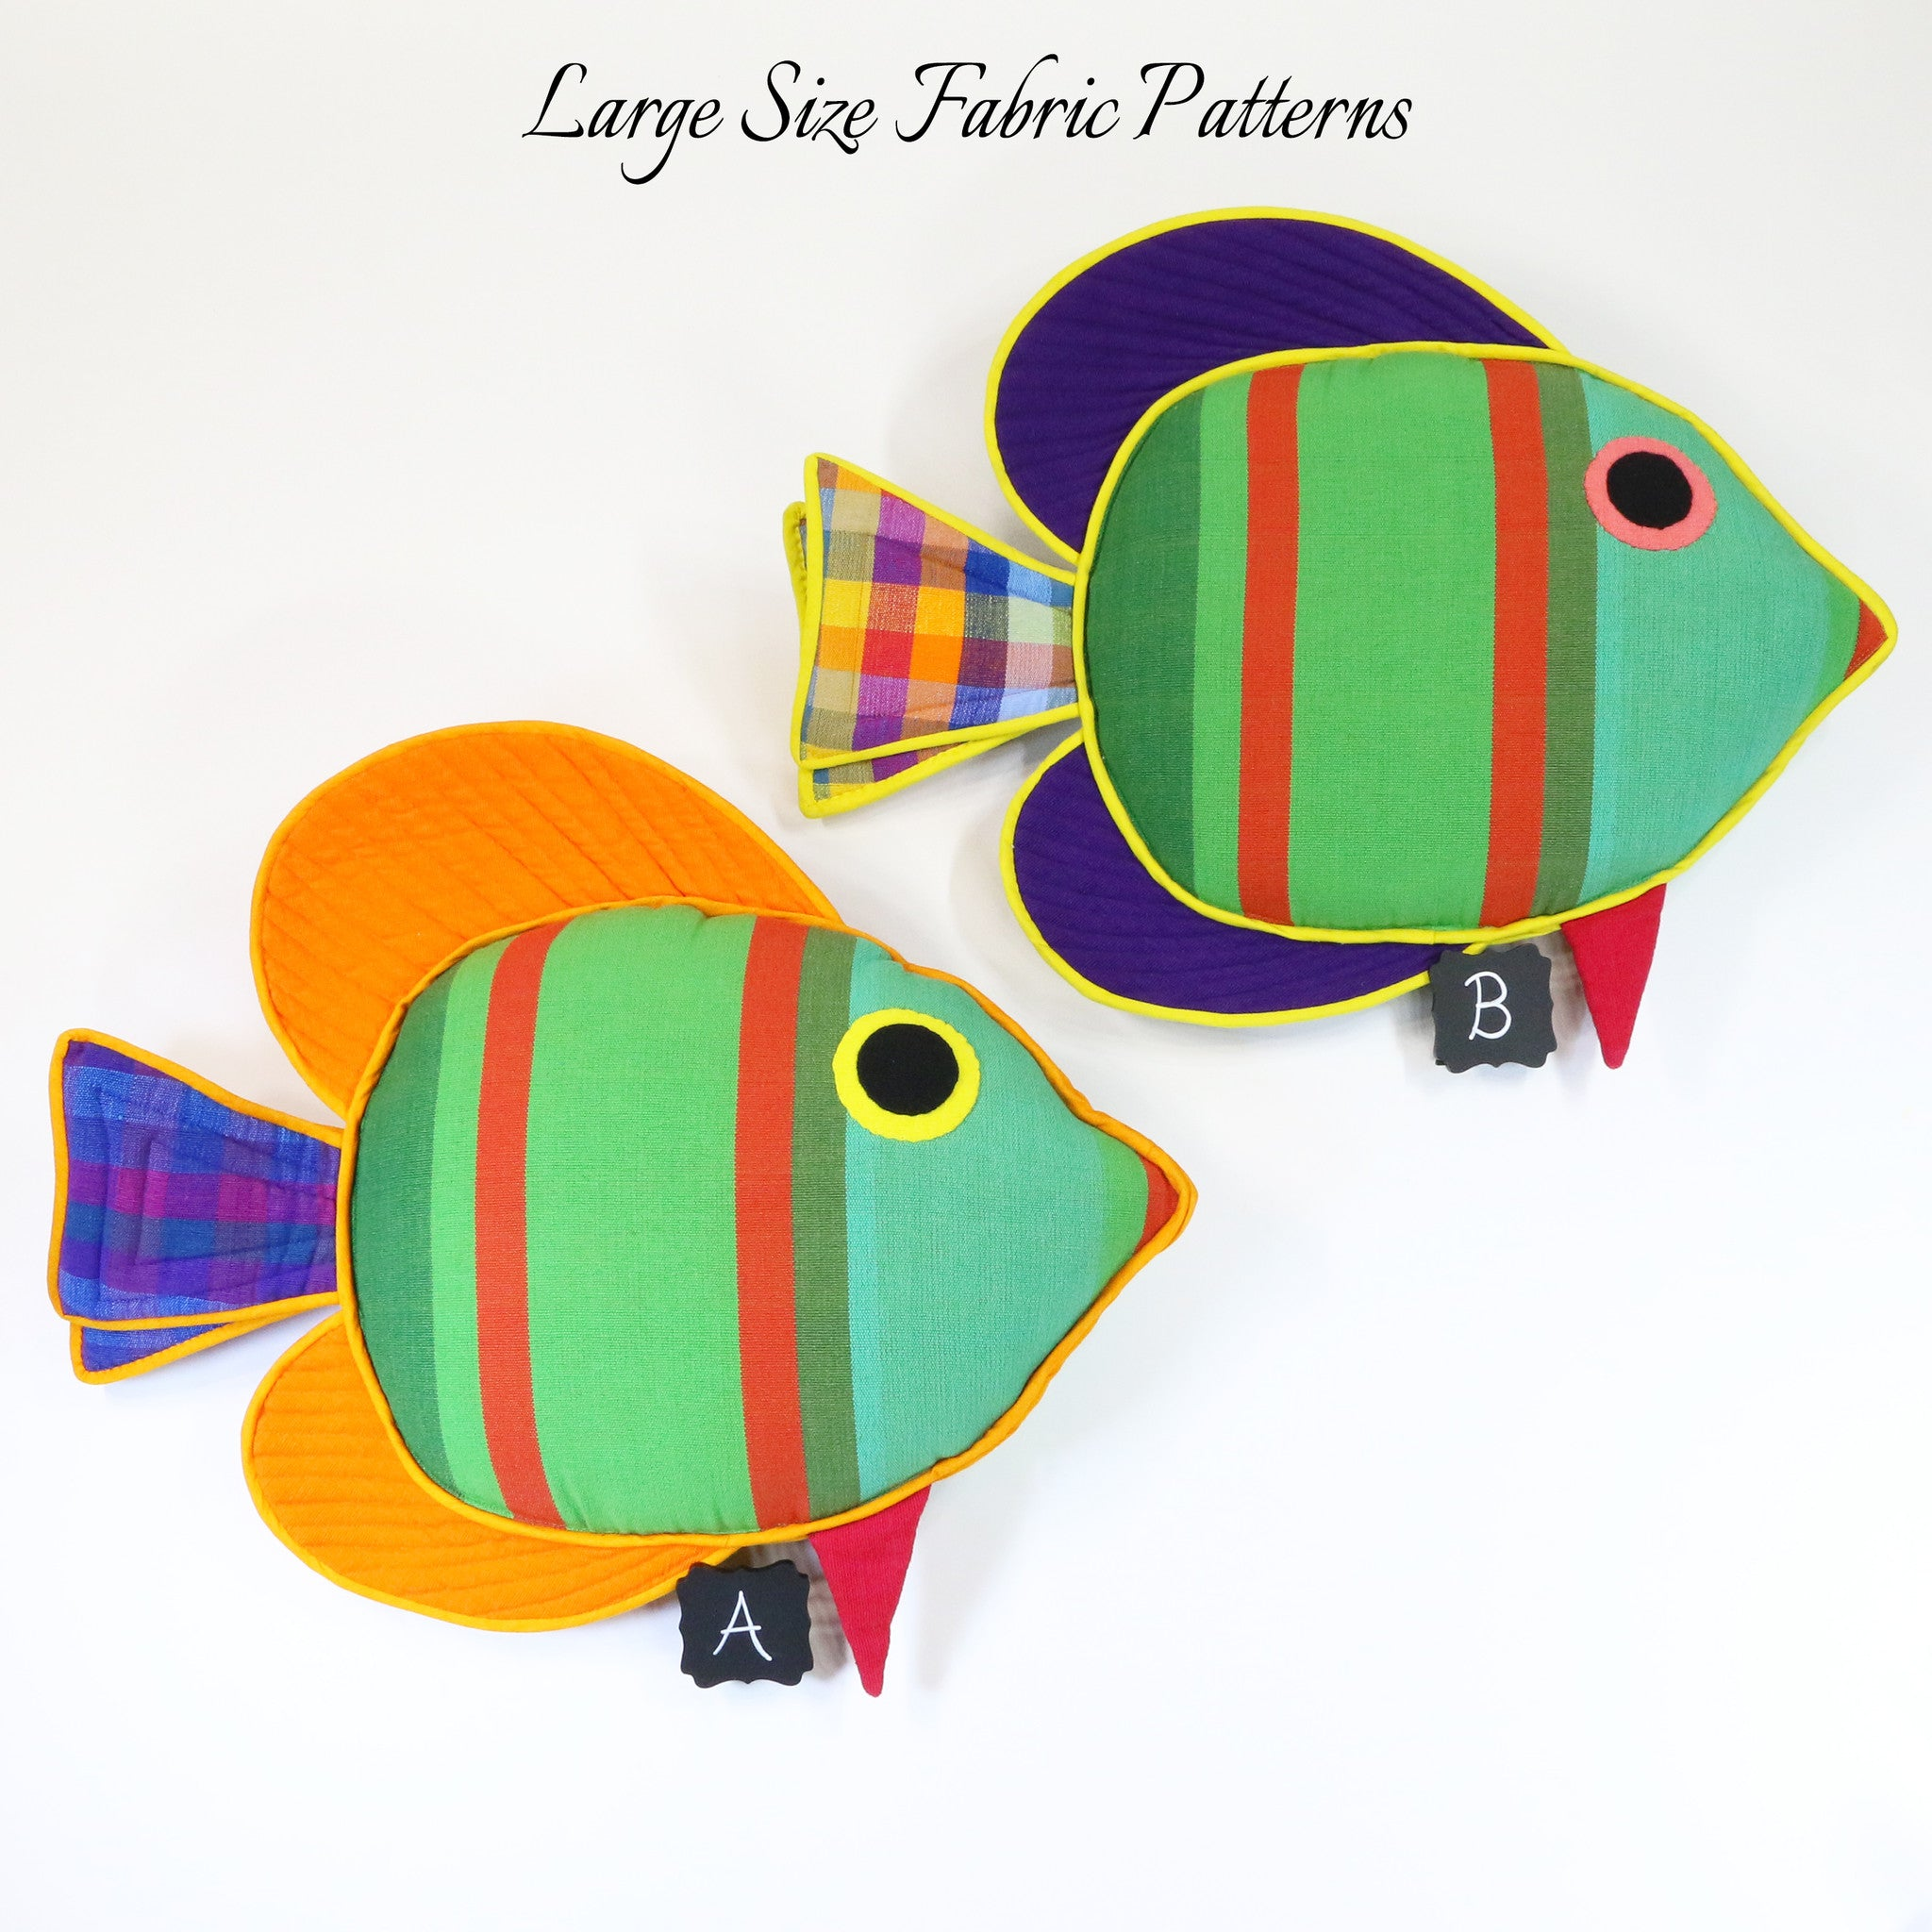 Quincy, the Sail Fin Fish – all large size fabric patterns shown